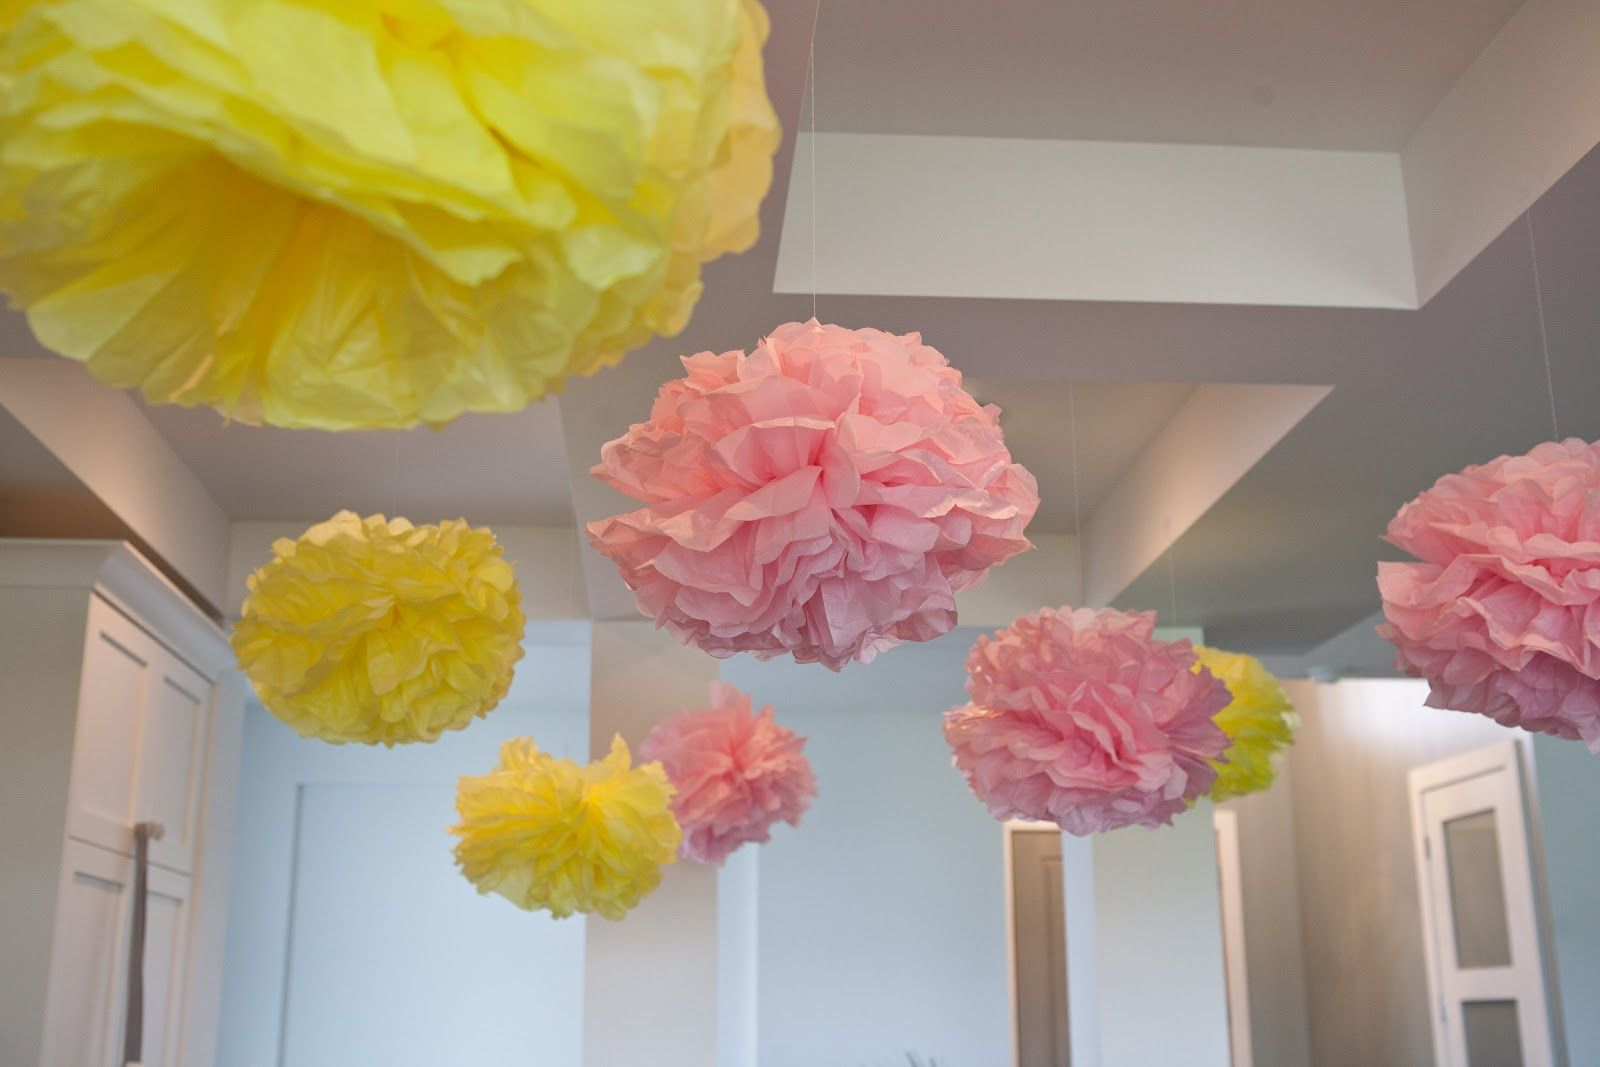 Homemade Poufs Made From Tissue Paper And String Could Hang From The